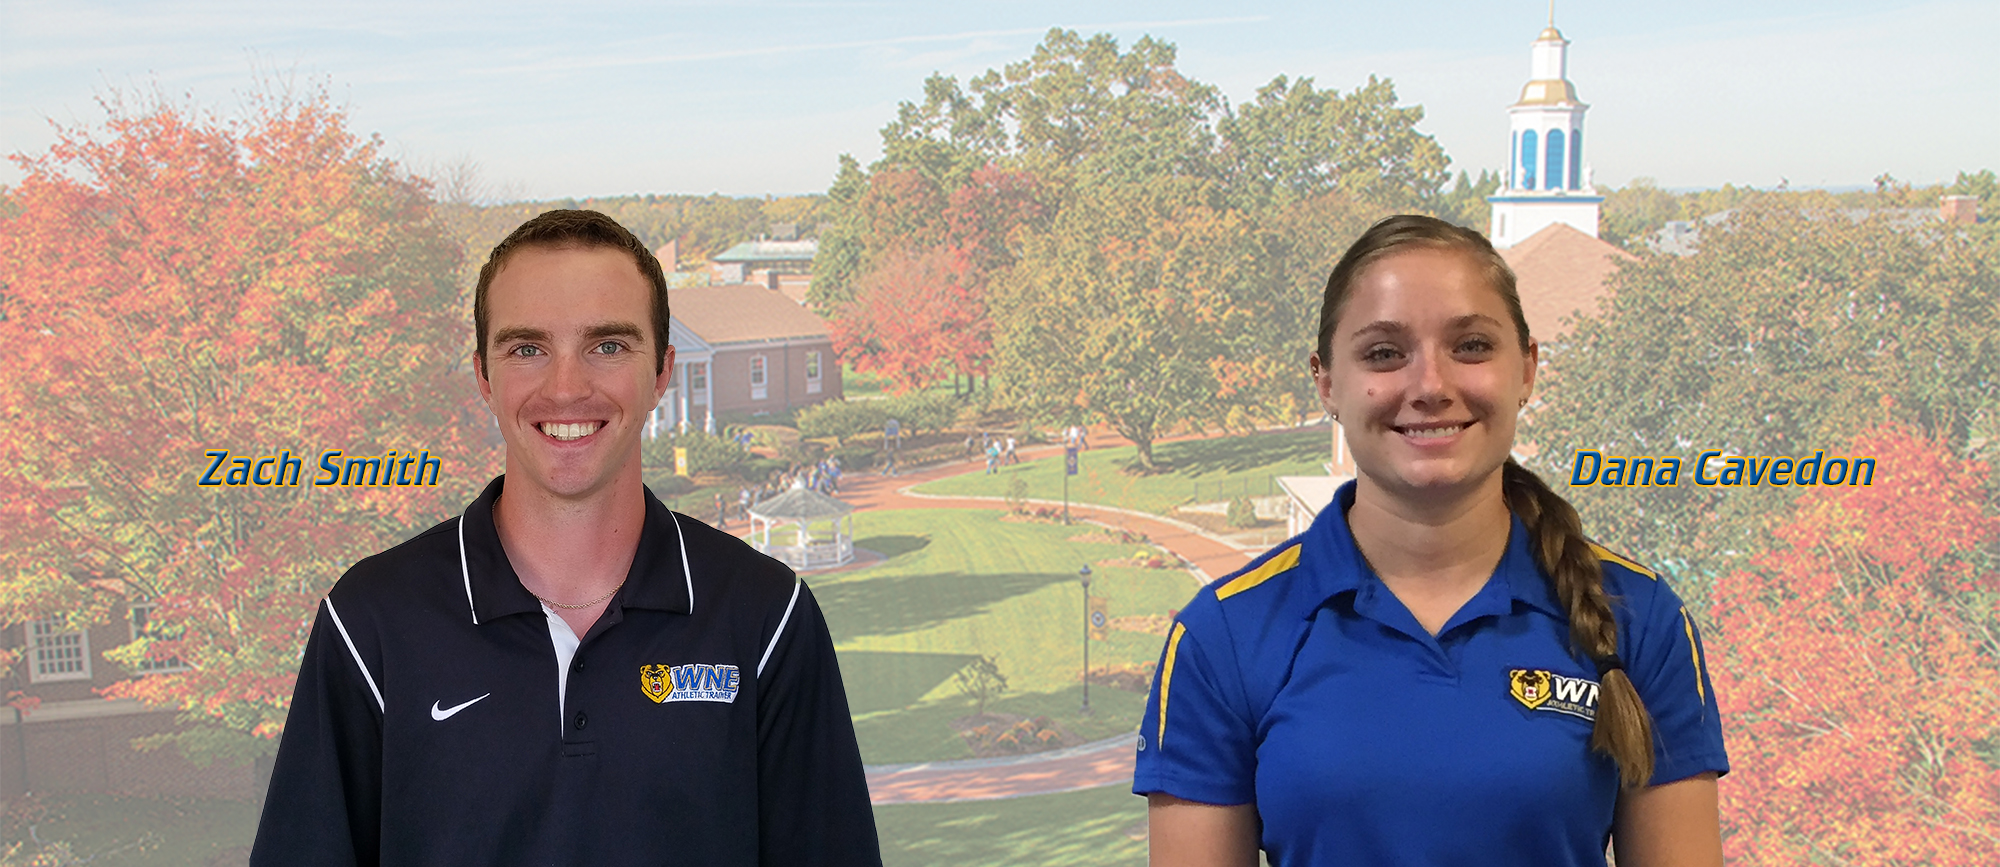 Dana Cavedon & Zach Smith Join Sports Medicine Staff at Western New England